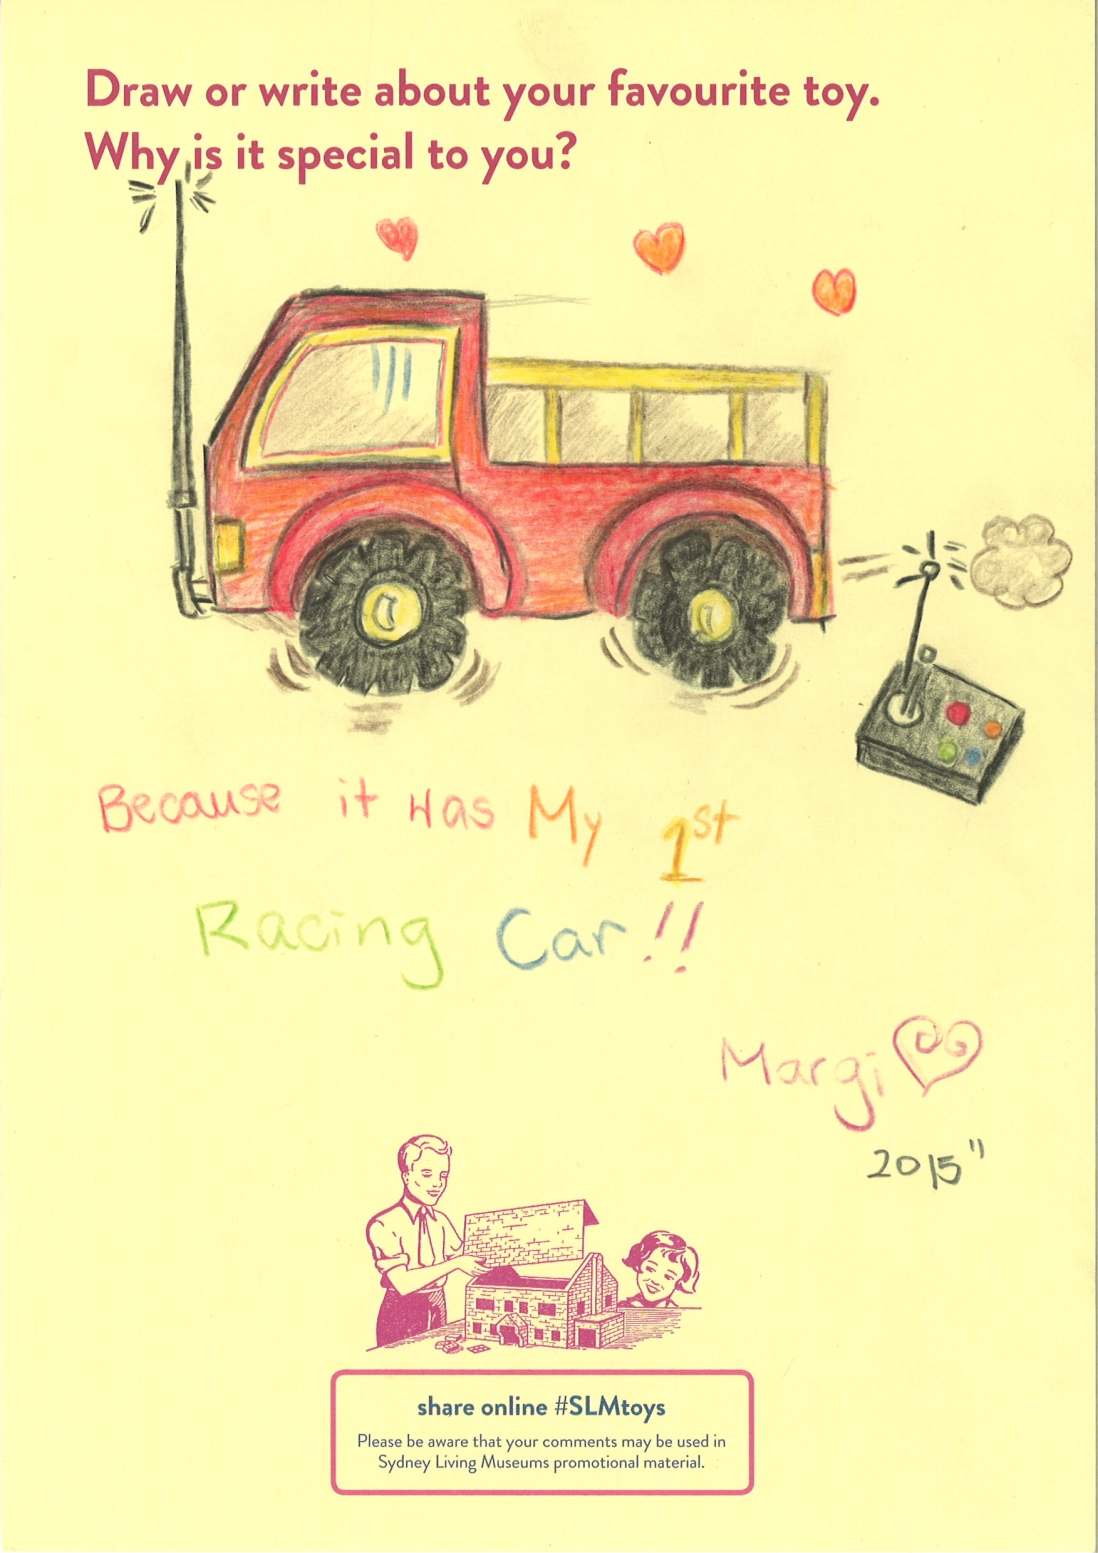 A drawing of a racing car